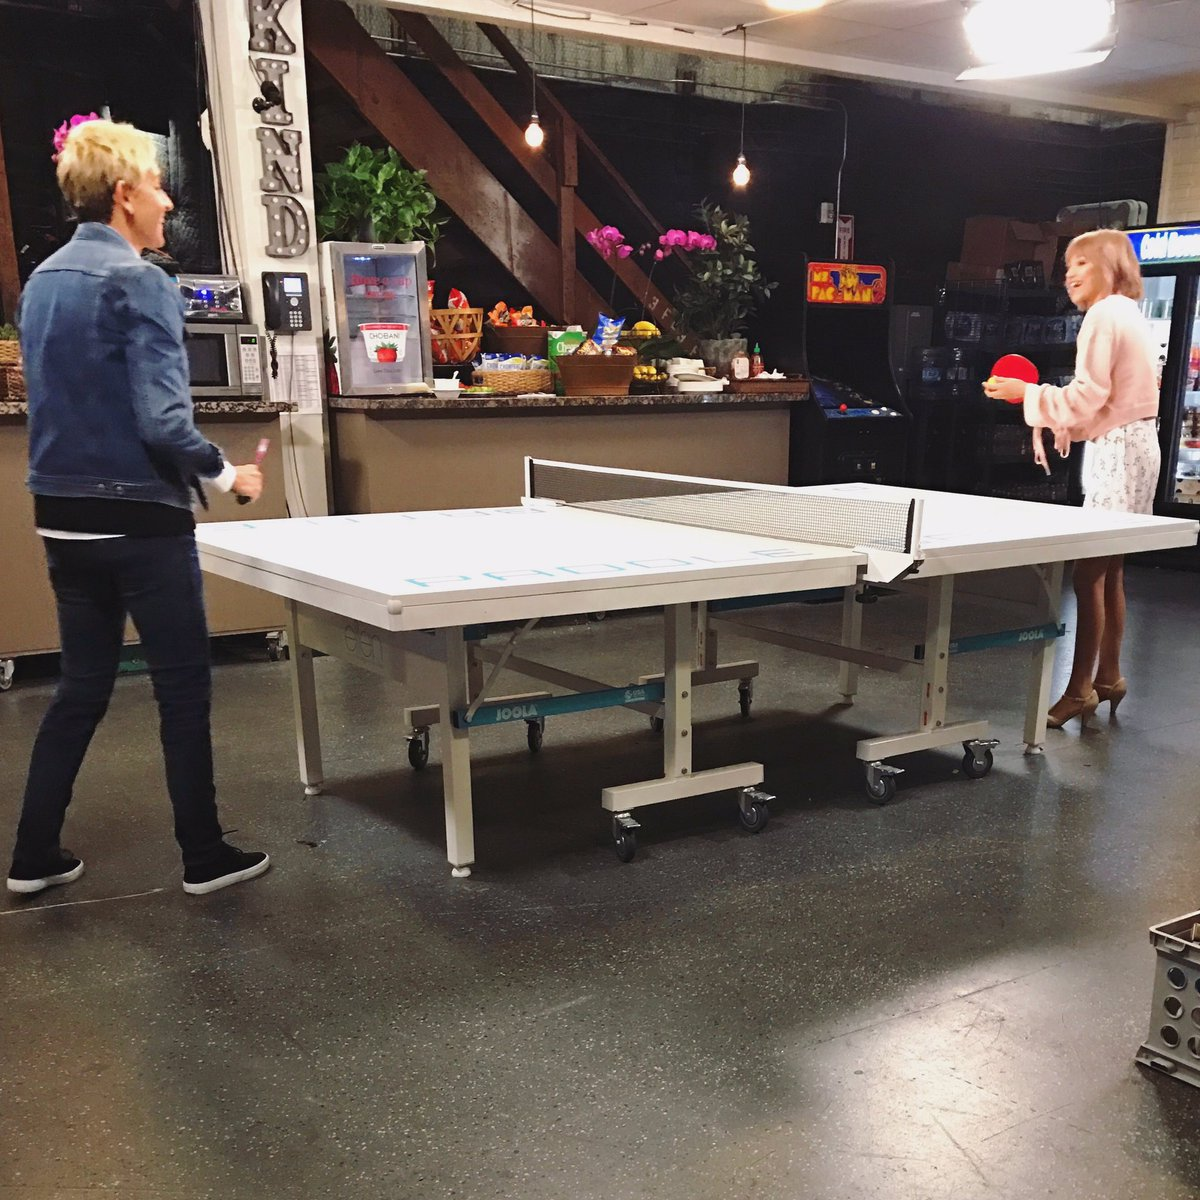 SOOO happy I got to perform #Moonlight on @theellenshow! I can't wait for you to see it tomorrow. She's AMAZING! Especially at ping pong <br>http://pic.twitter.com/OgmF9R1tiA